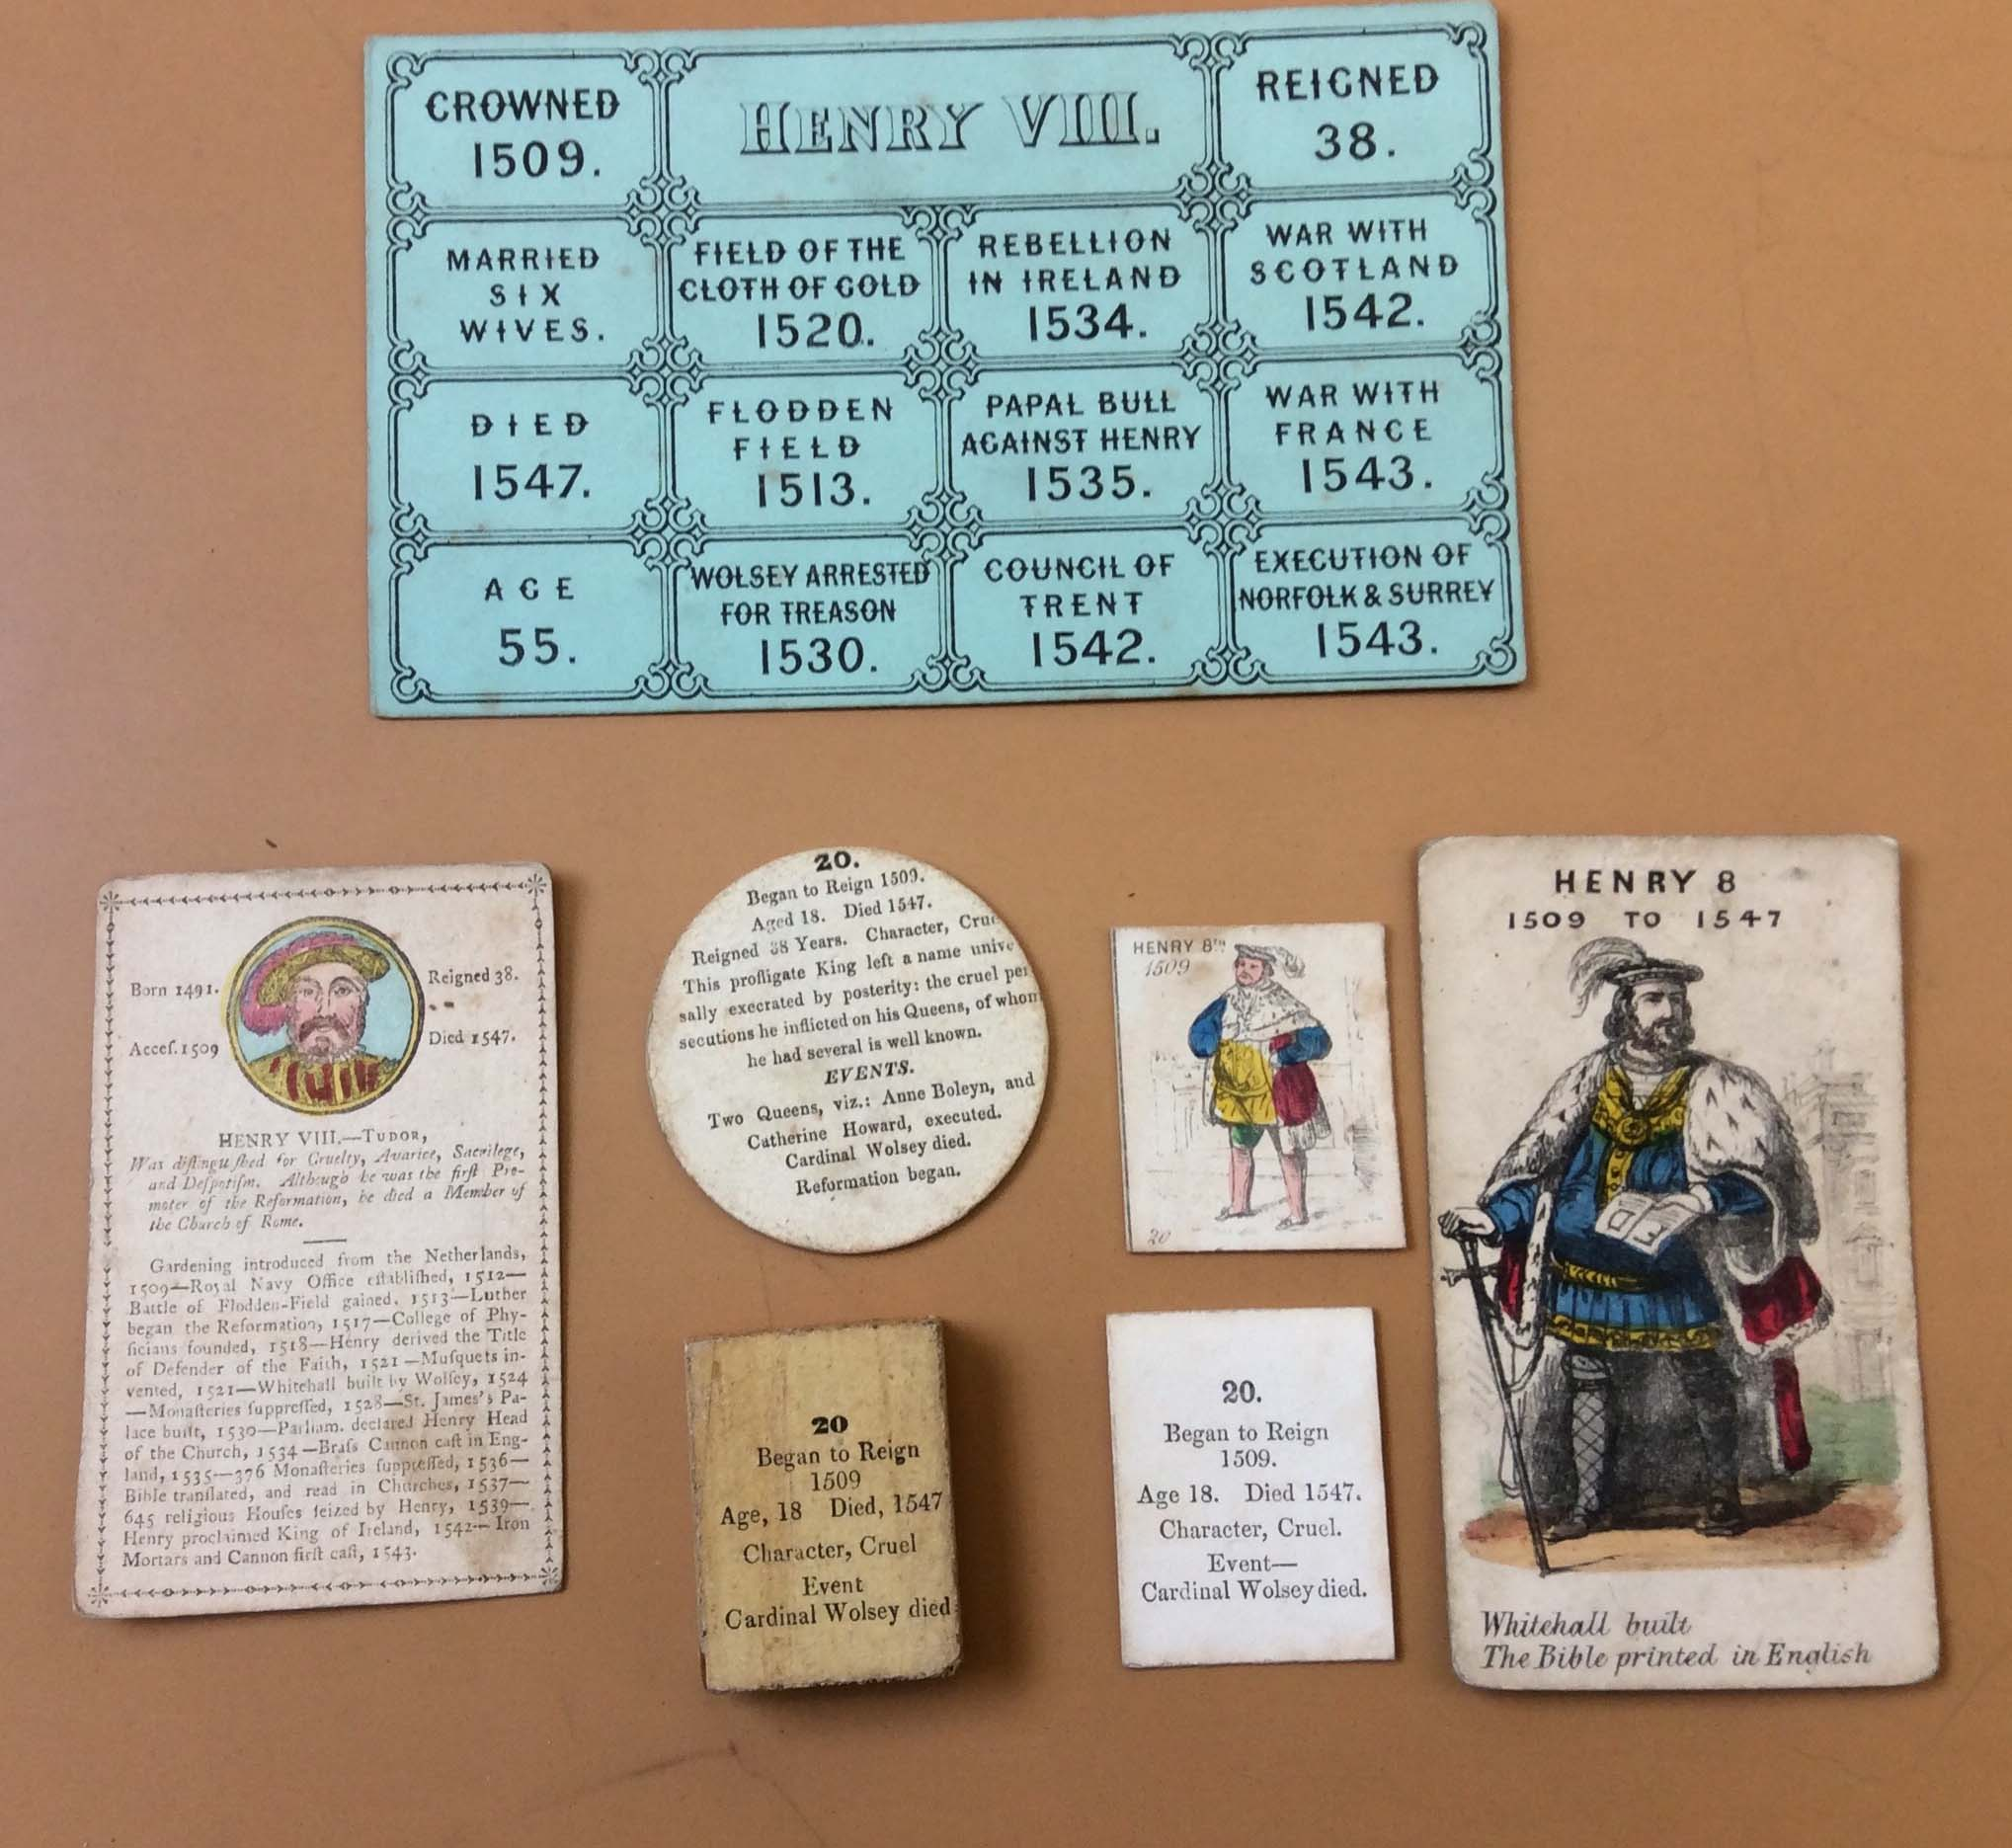 Various interpretations of the character and achievements of Henry VIII from the Ballam Collection